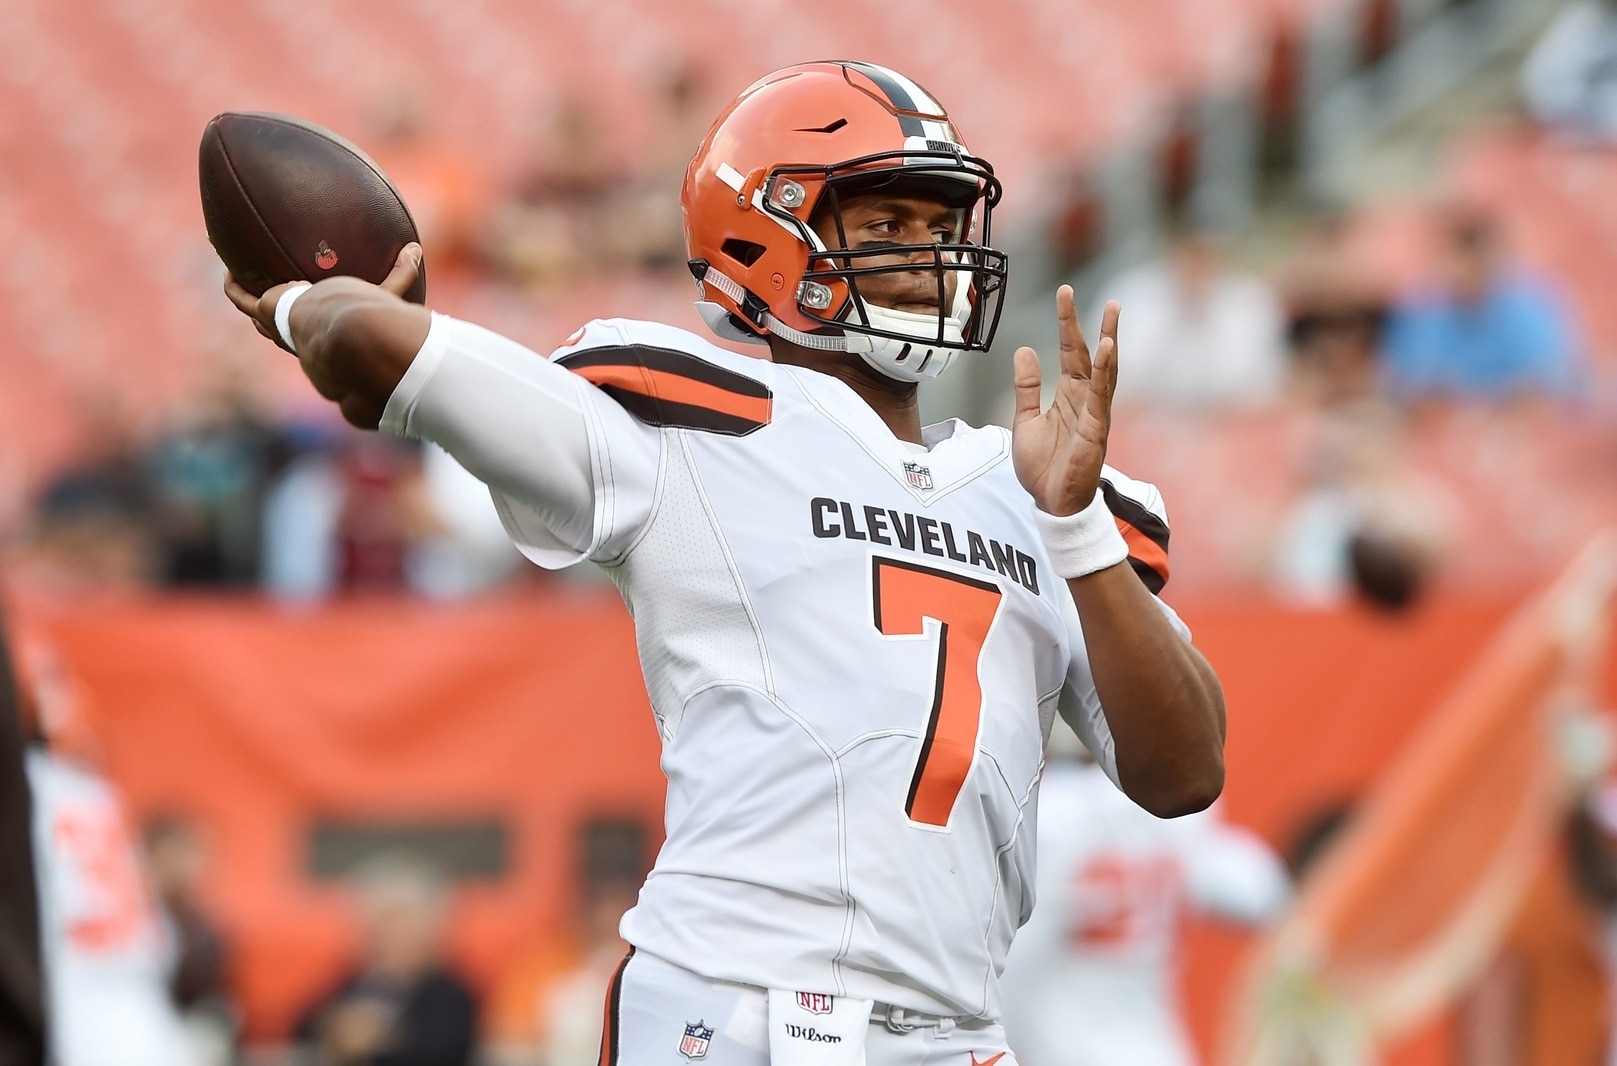 Browns QB DeShone Kizer looked the part in his NFL debut.